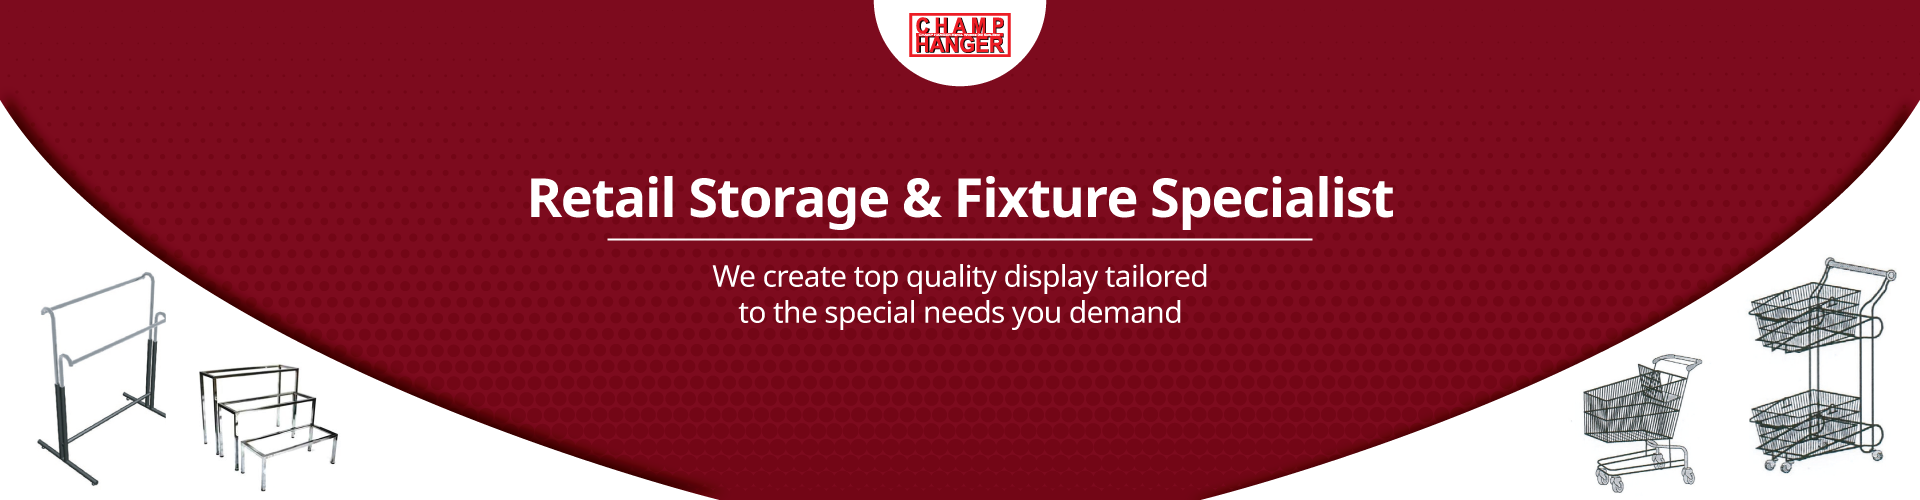 Retail Storage and Fixture Specialist Malaysia